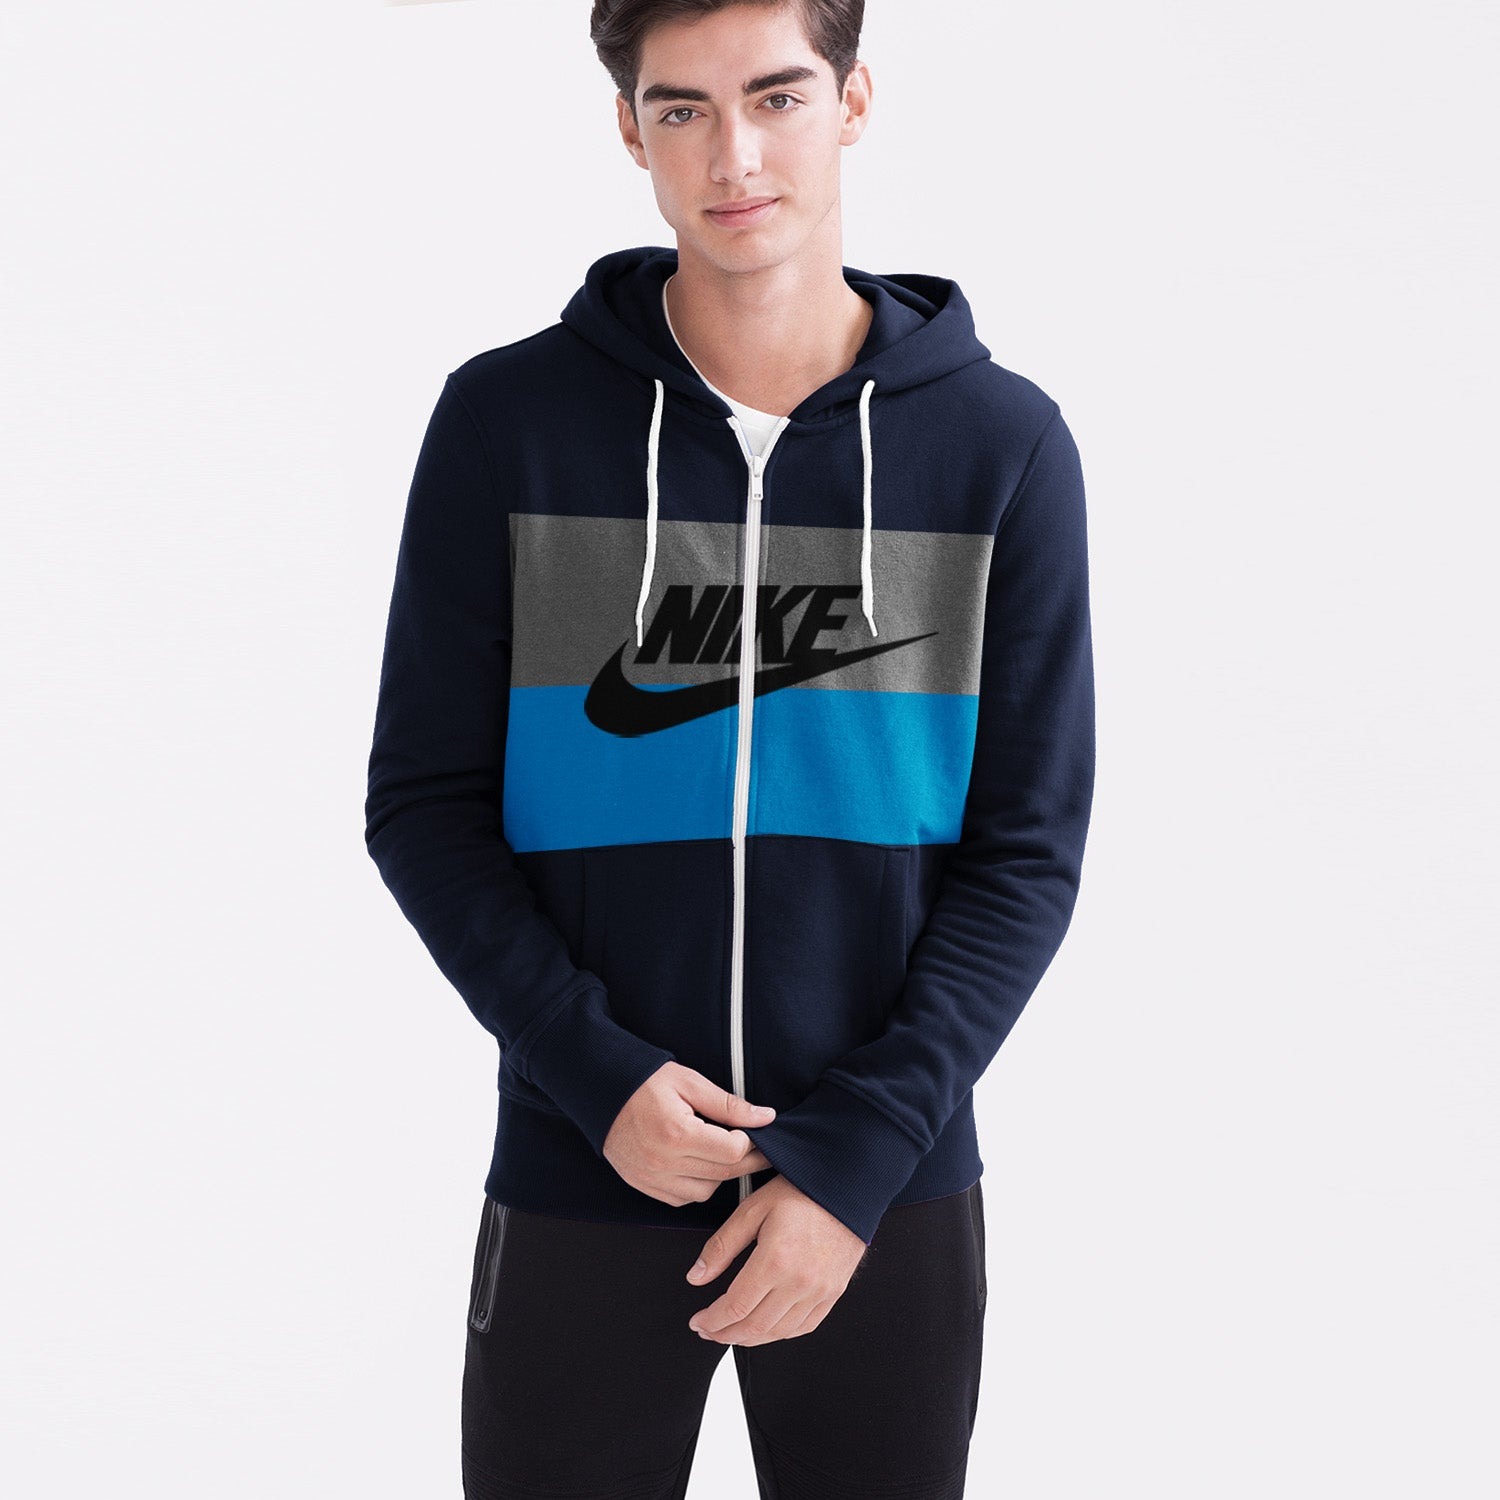 NK Slim Fit Stretchable Zipper Hoodie For Men-Dark Navy with Cyan & Dark Grey Panel-BE11033